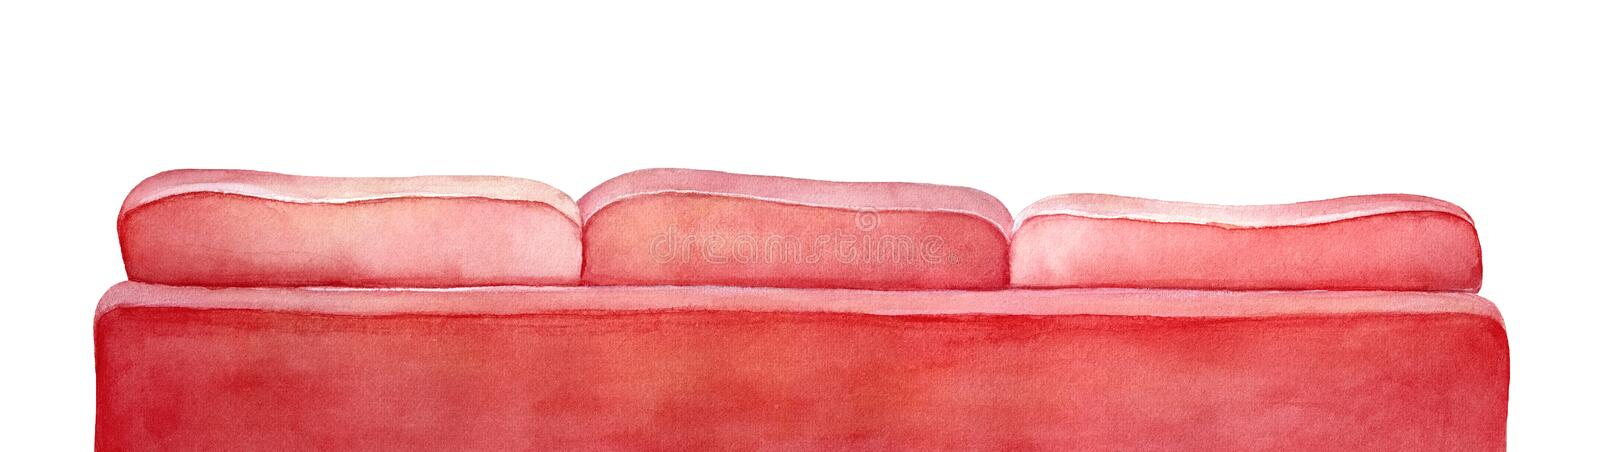 Rear view of large classic comfortable sofa. stock illustration